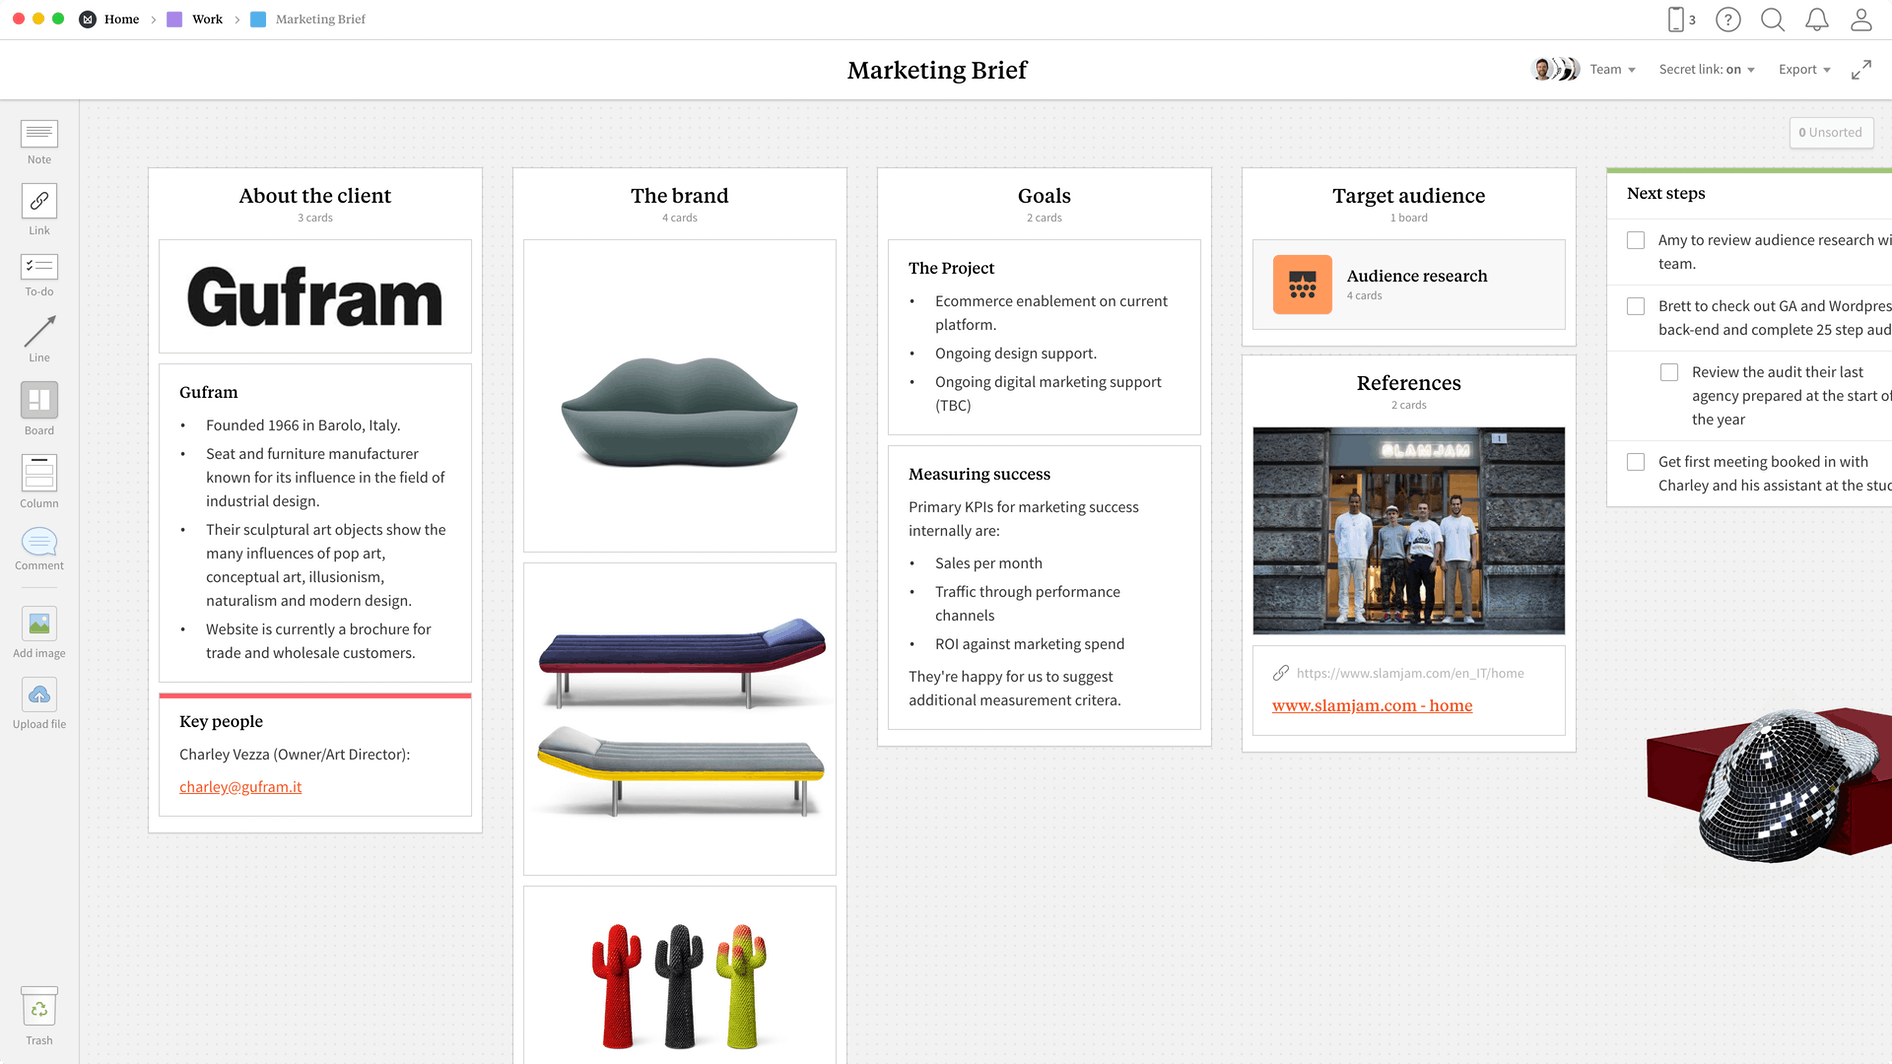 Marketing Brief Template, within the Milanote app